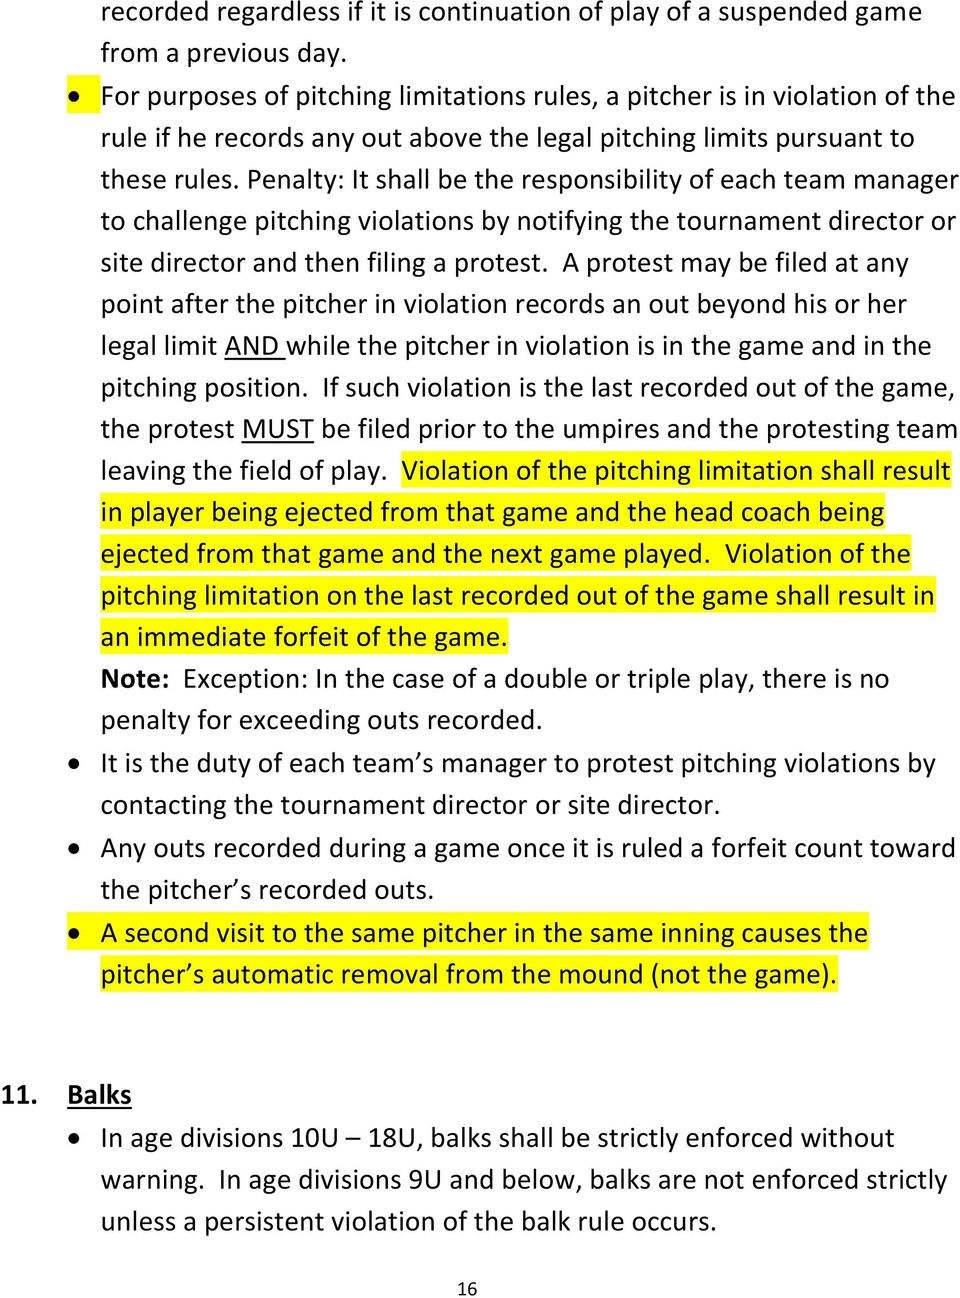 Penalty: It shall be the responsibility of each team manager to challenge pitching violations by notifying the tournament director or site director and then filing a protest.